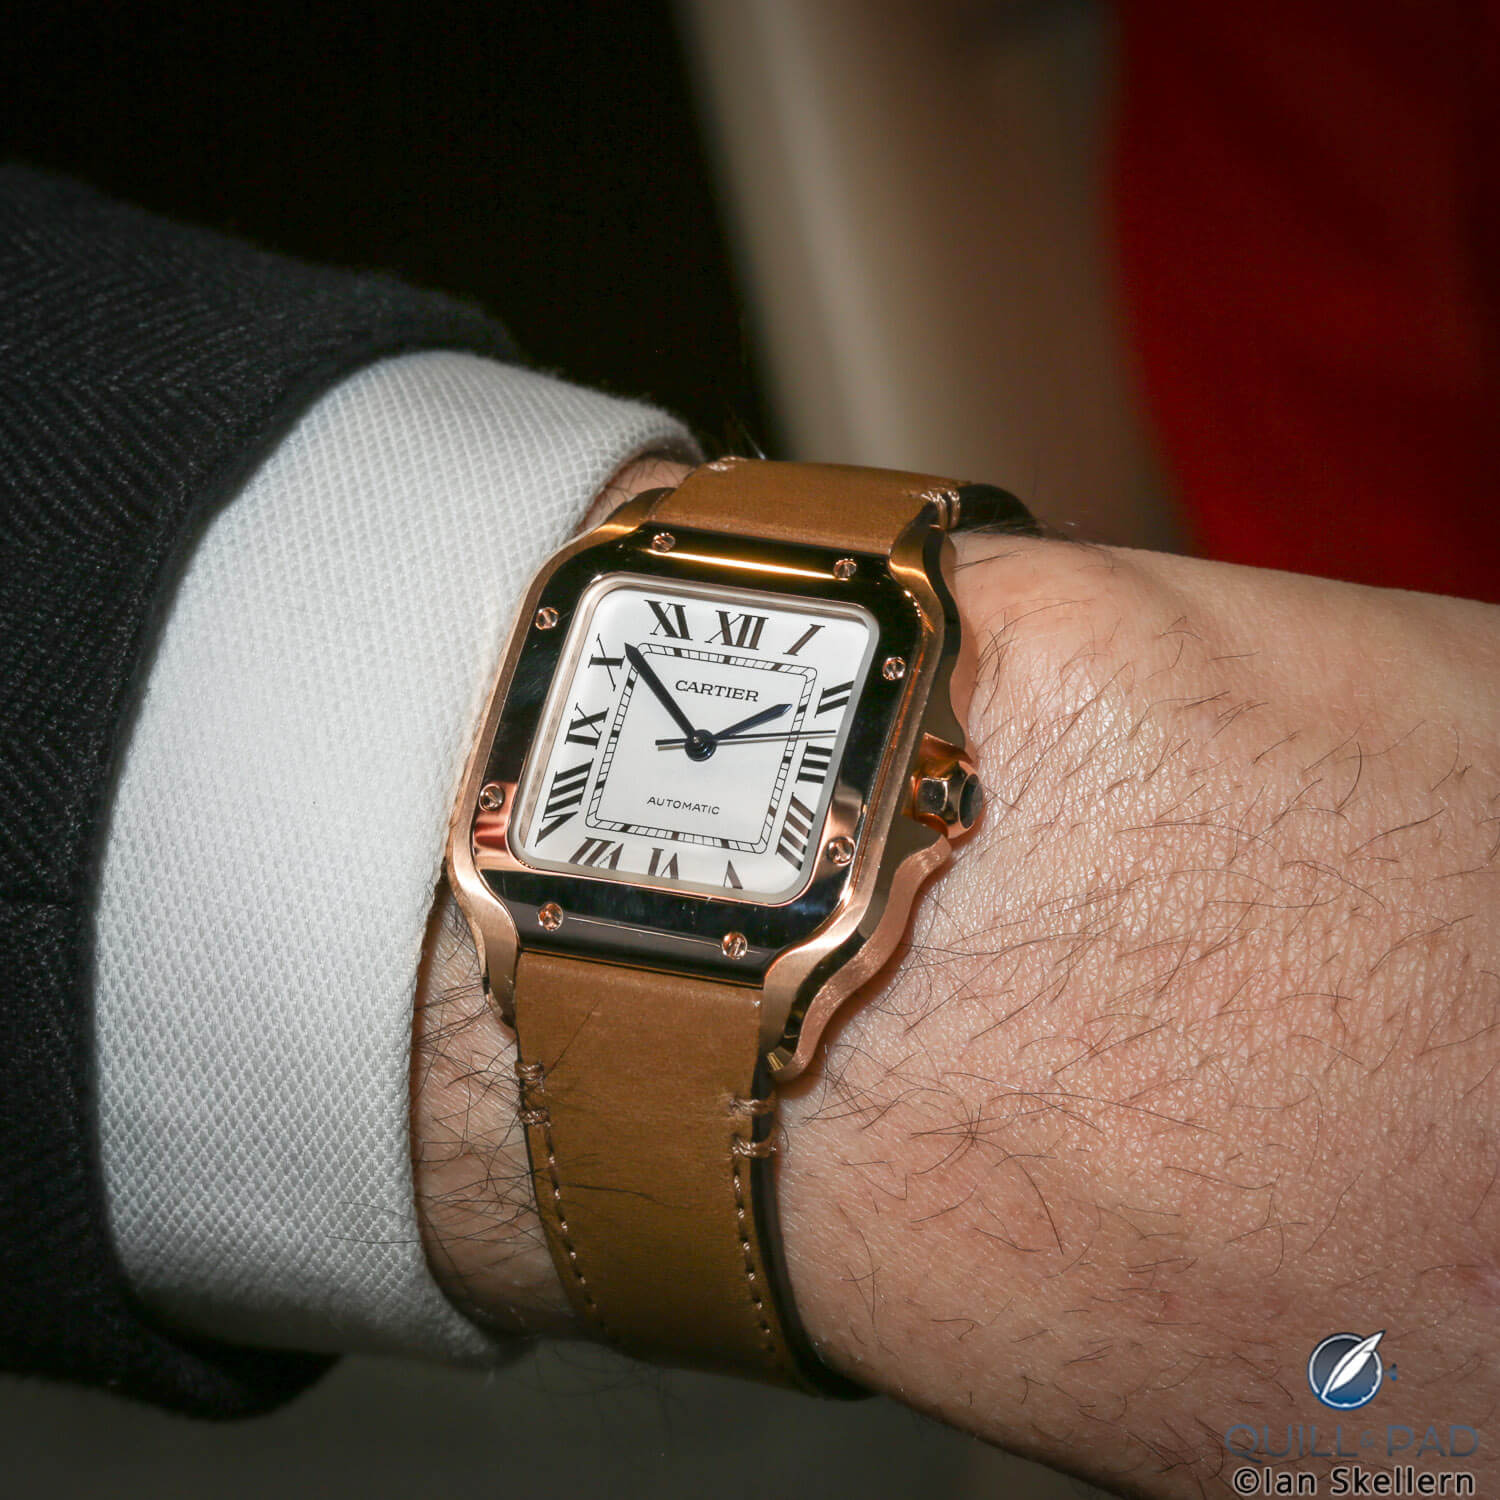 Santos de Cartier in pink gold on the wrist